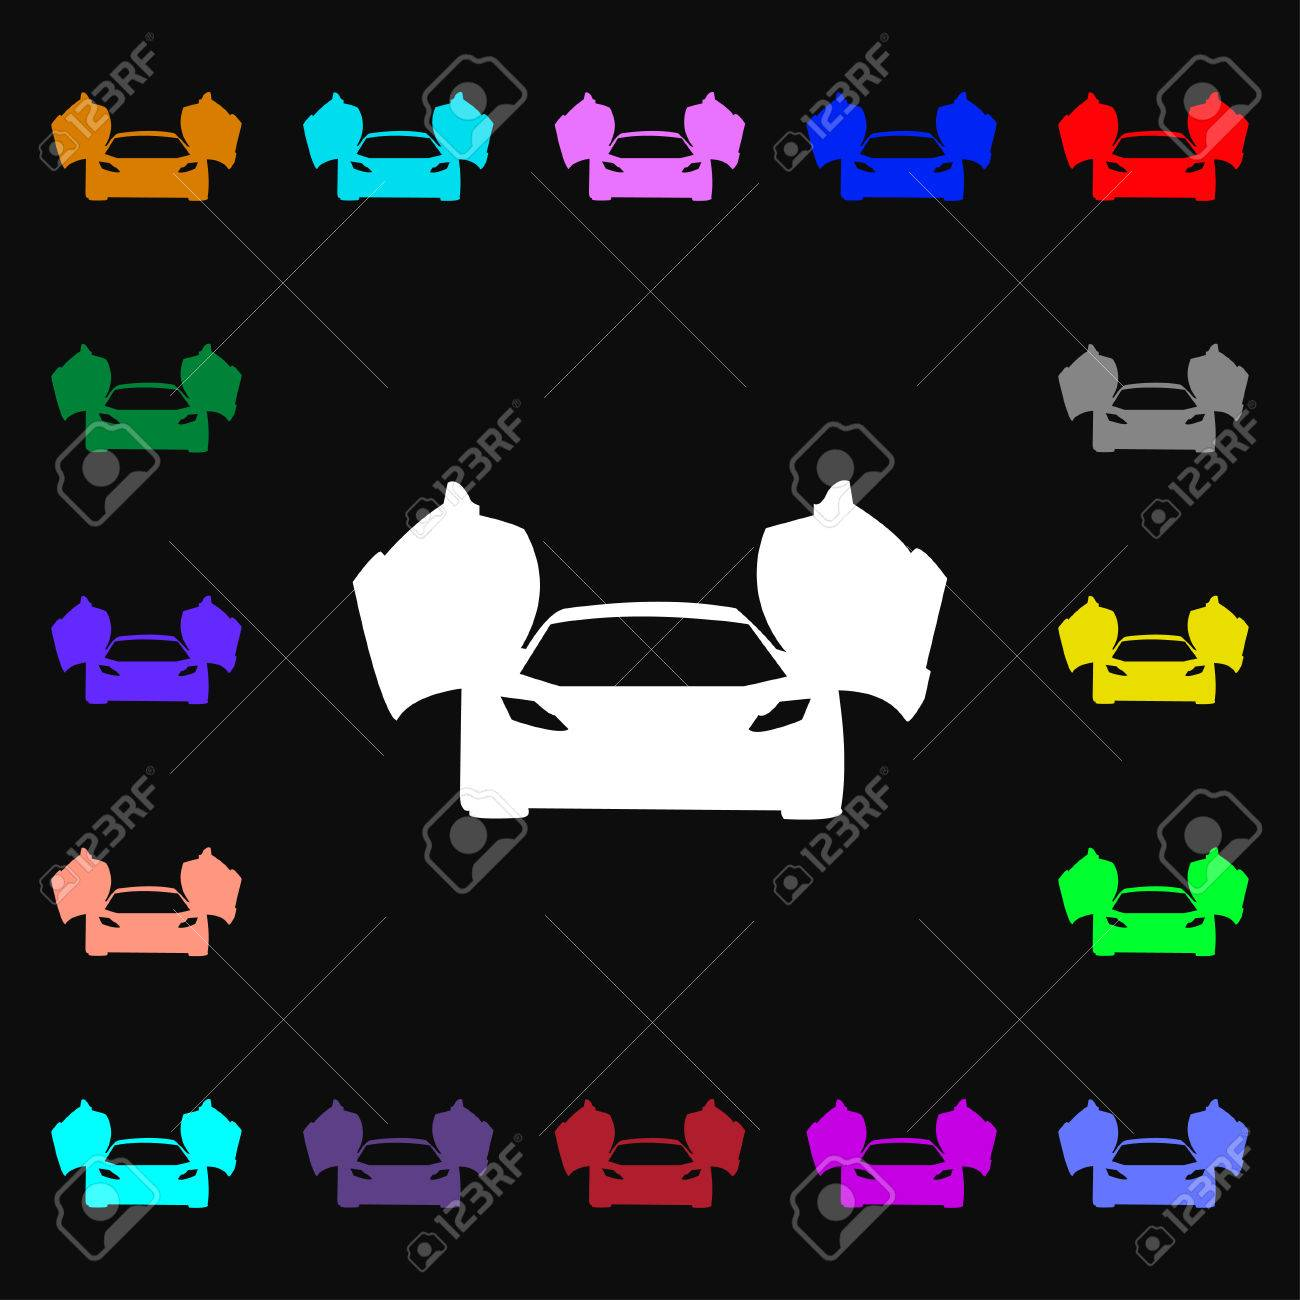 Sports Car Icon Sign Lots Of Colorful Symbols For Your Design